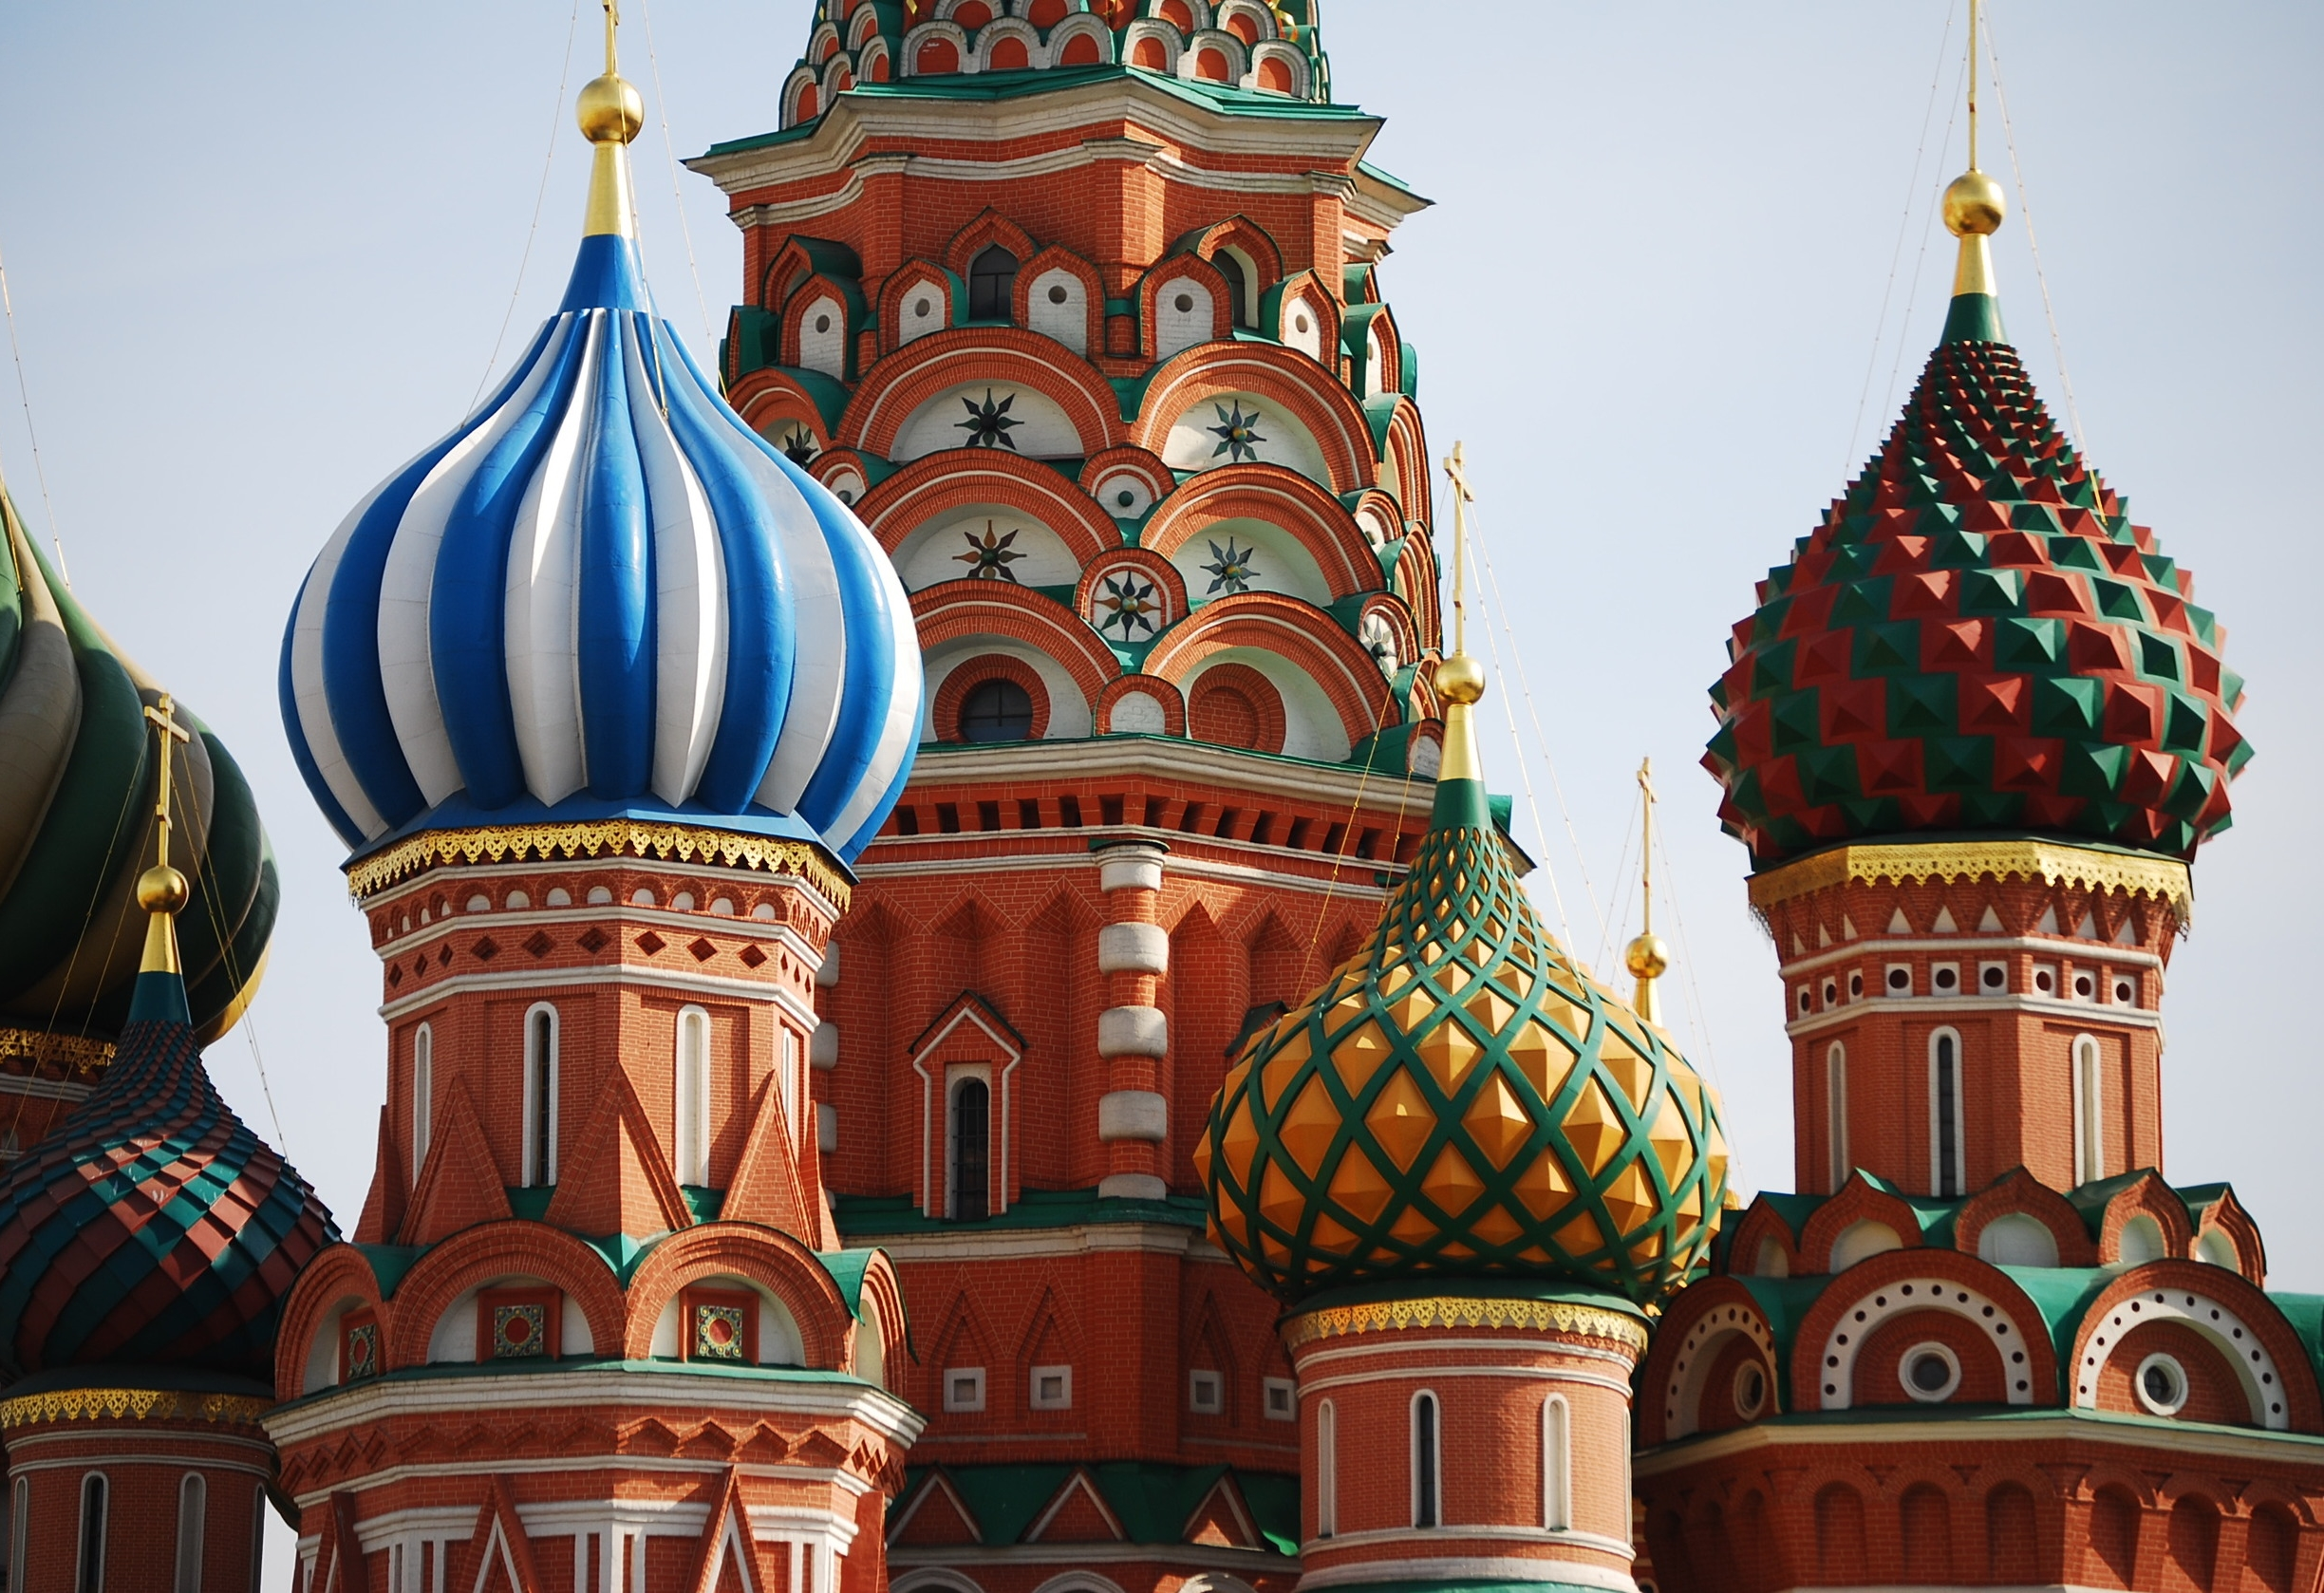 The iconic onion domes of St. Basil's Cathedral, Moscow